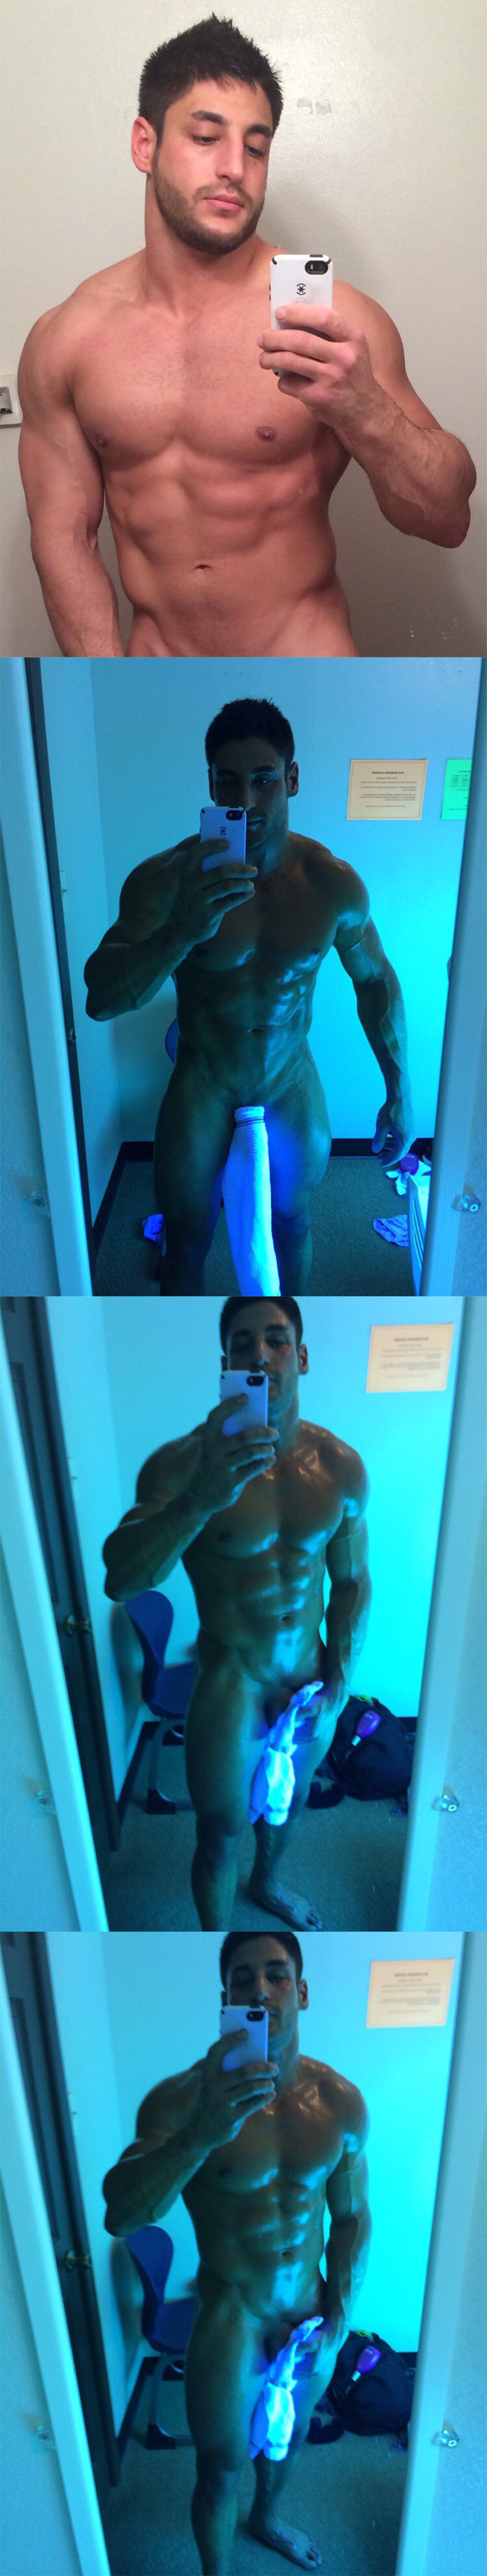 spycam muscle guy naked solarium big cock